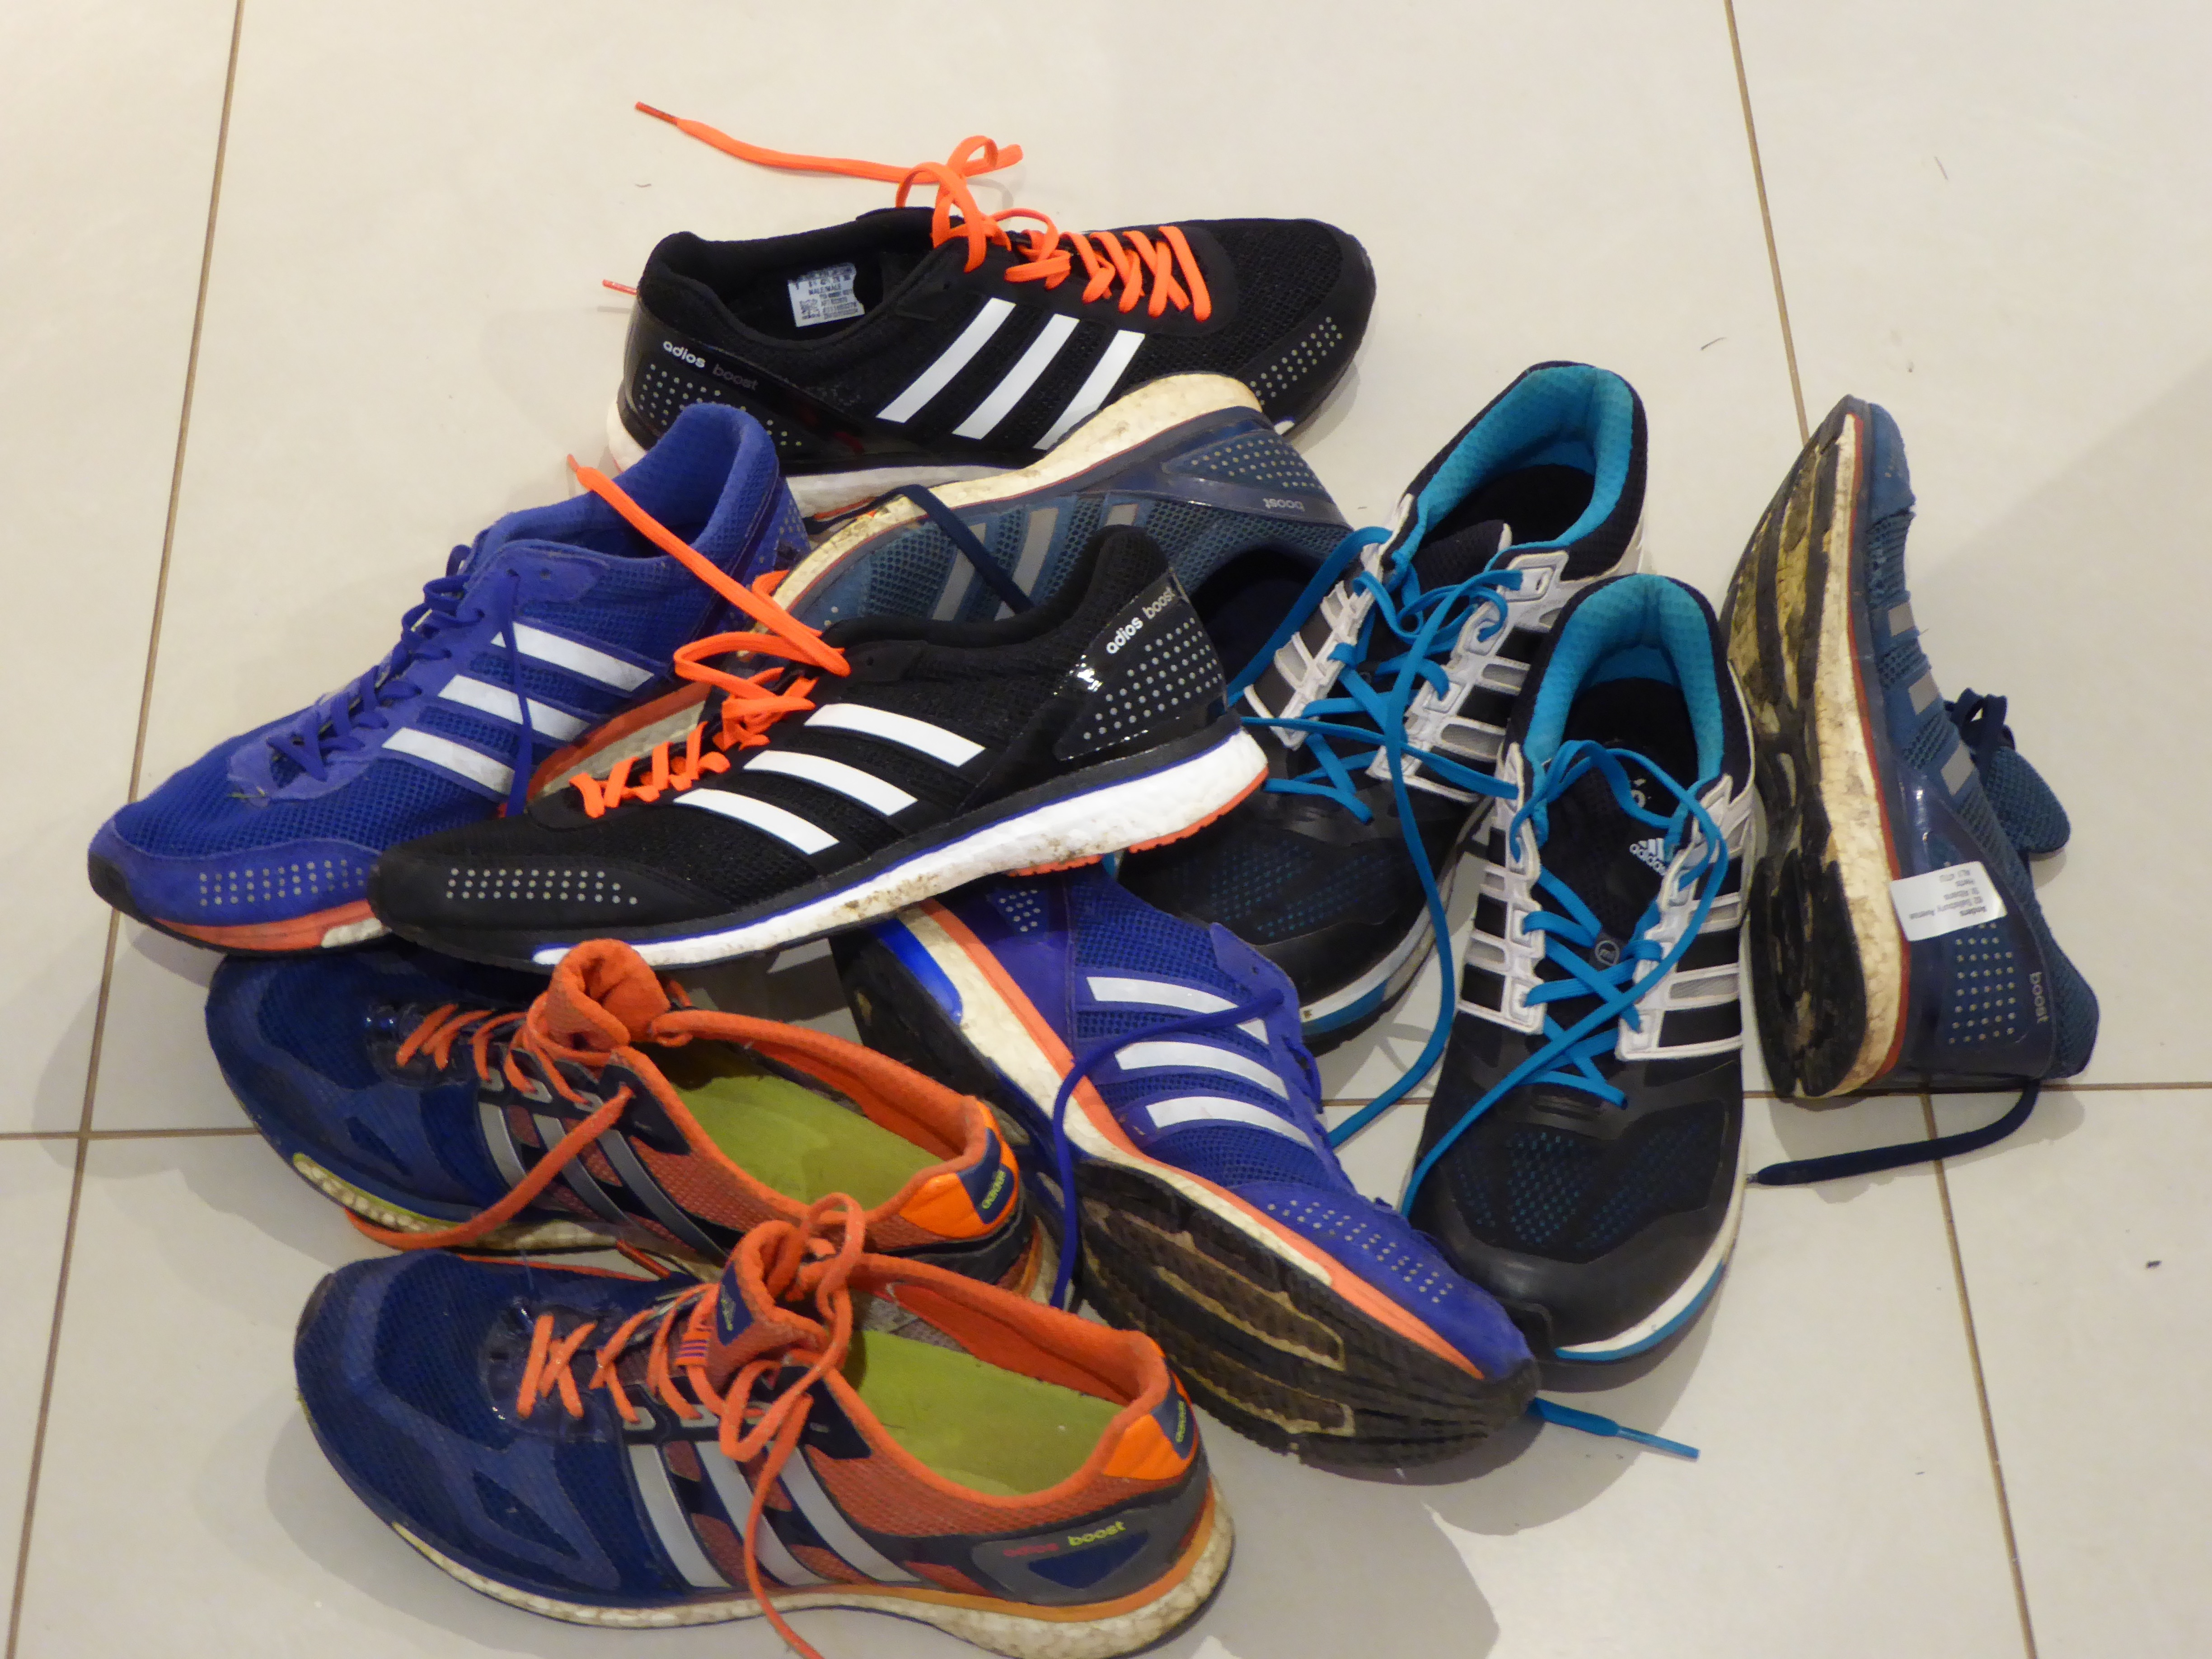 Product Review: Adidas Adios Boost 2 Review